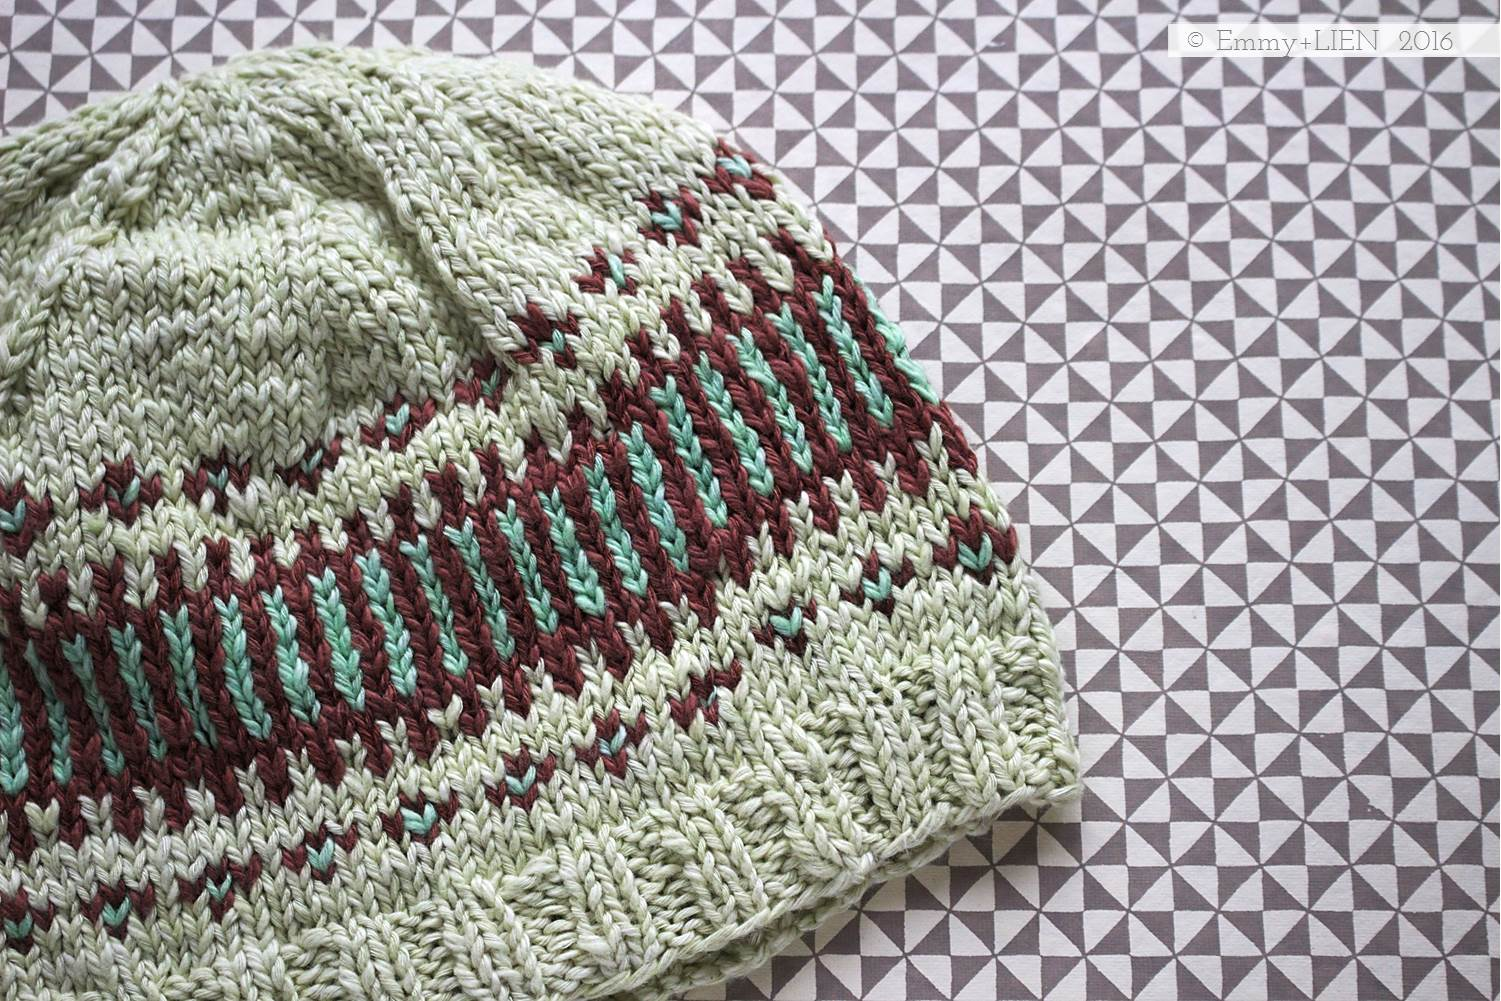 Clayoquot Toque   knitted by Emmy + LIEN, pattern by Tin Can Knits